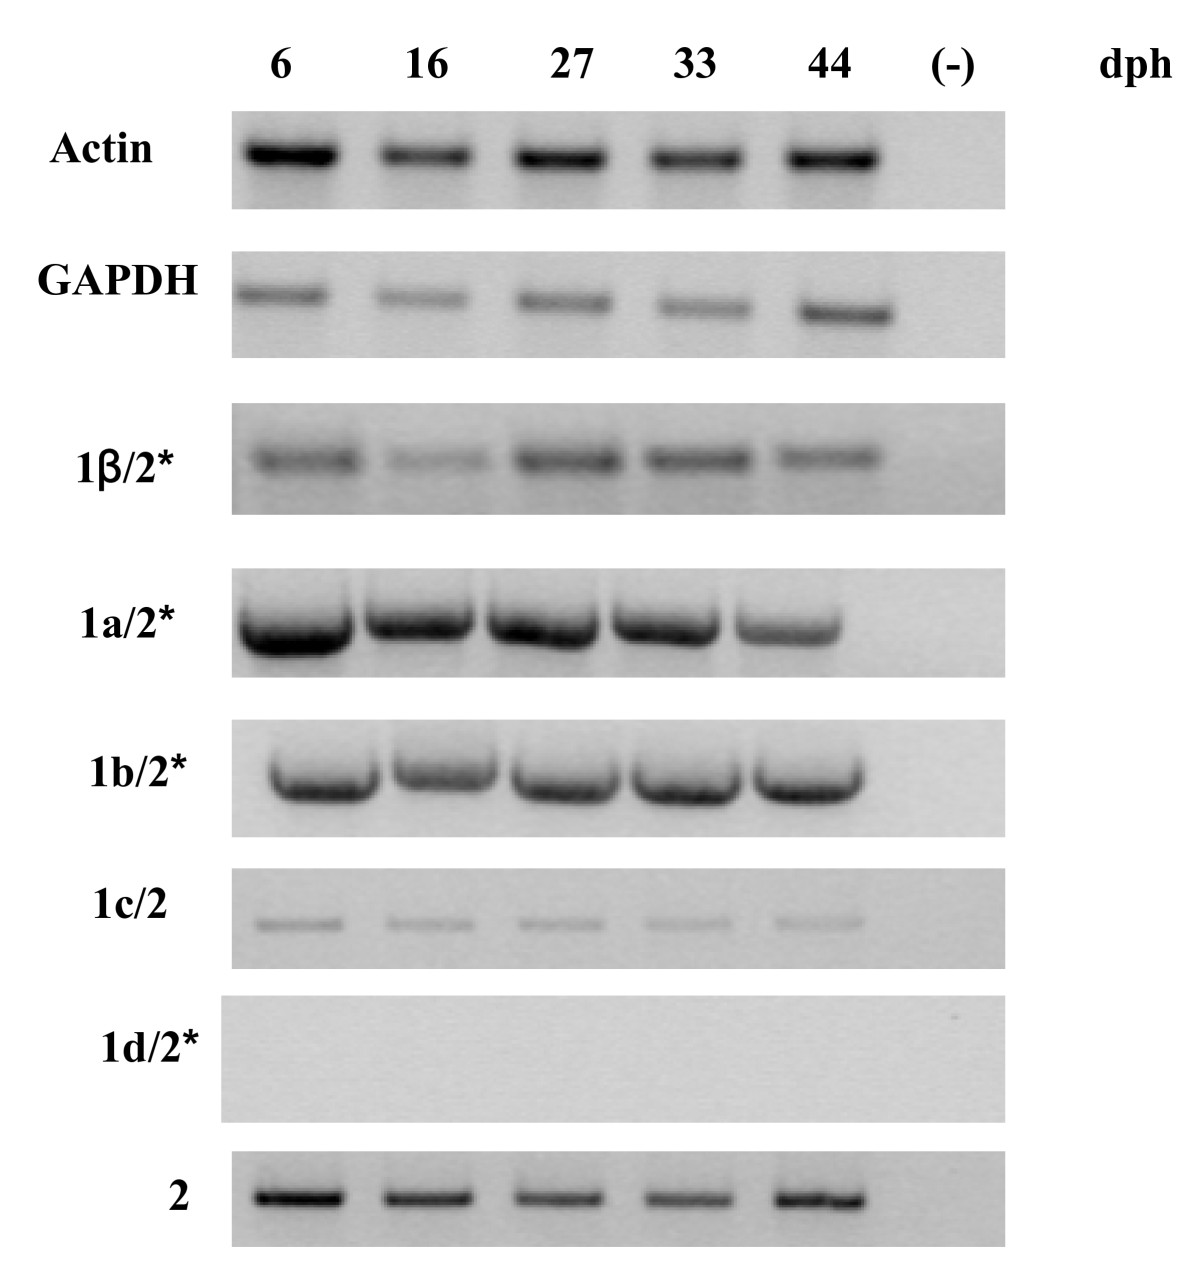 http://static-content.springer.com/image/art%3A10.1186%2F1471-2202-11-4/MediaObjects/12868_2009_Article_1563_Fig5_HTML.jpg